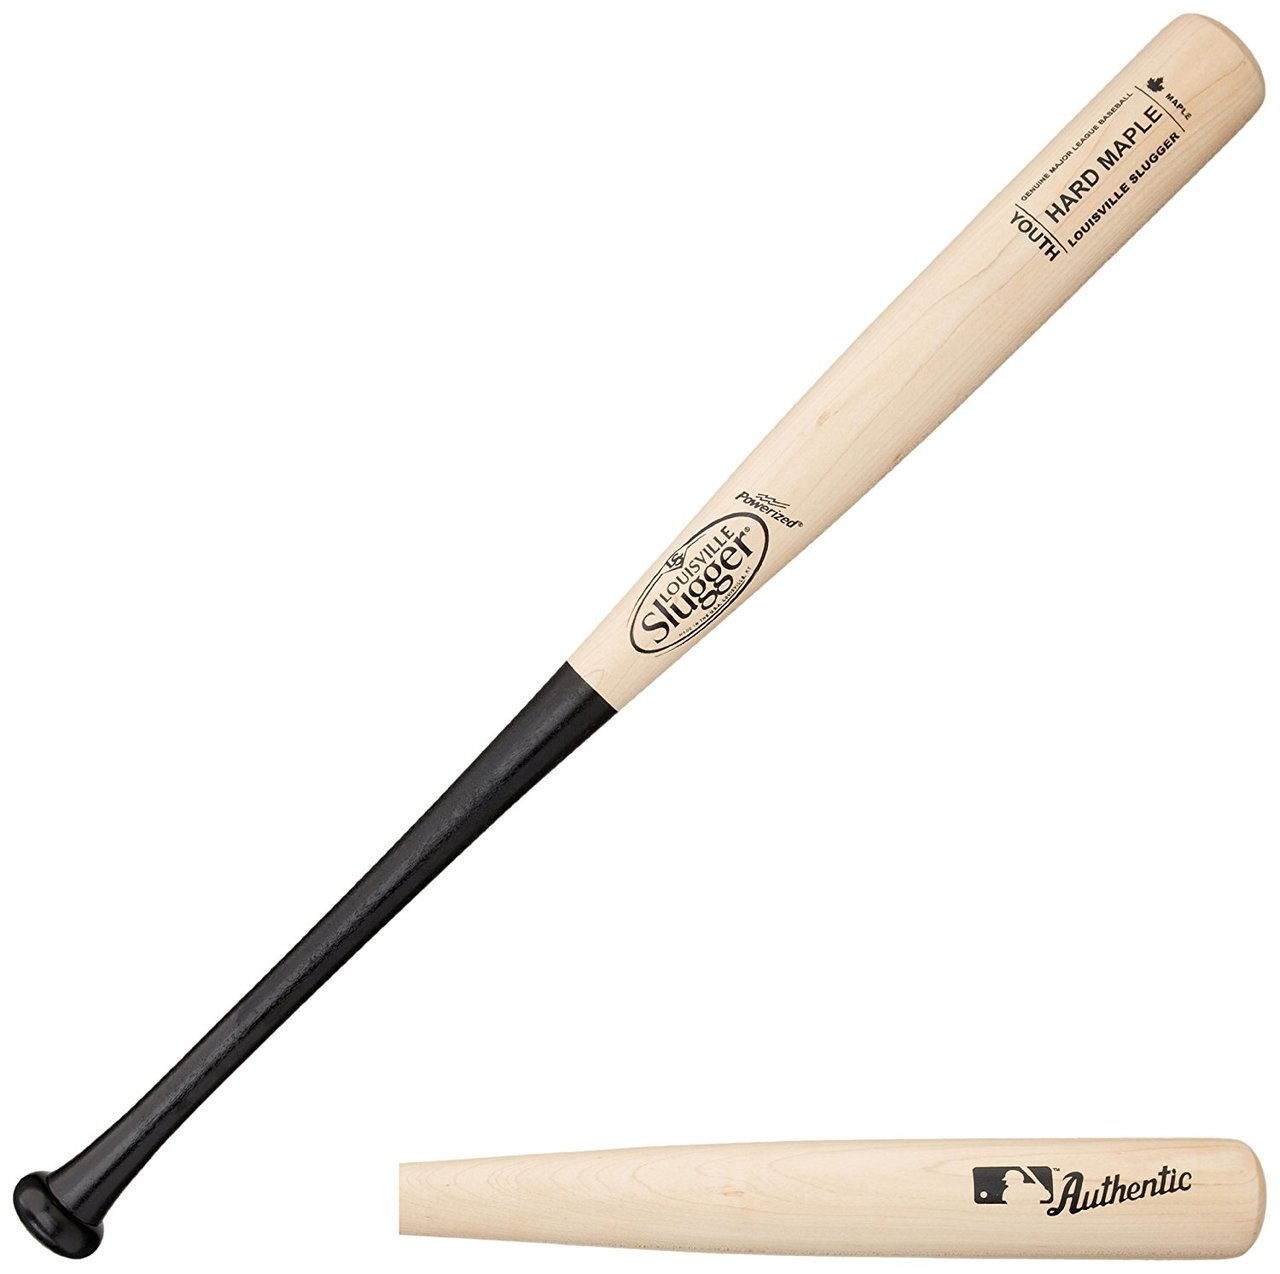 louisville-slugger-youth-wb-m9-maple-wood-bat-black-natural-31-inch WBM914-YBCBN-31 Inch Louisville 044277006105 Youth M9 Maple is the best youth louisville maple wood for